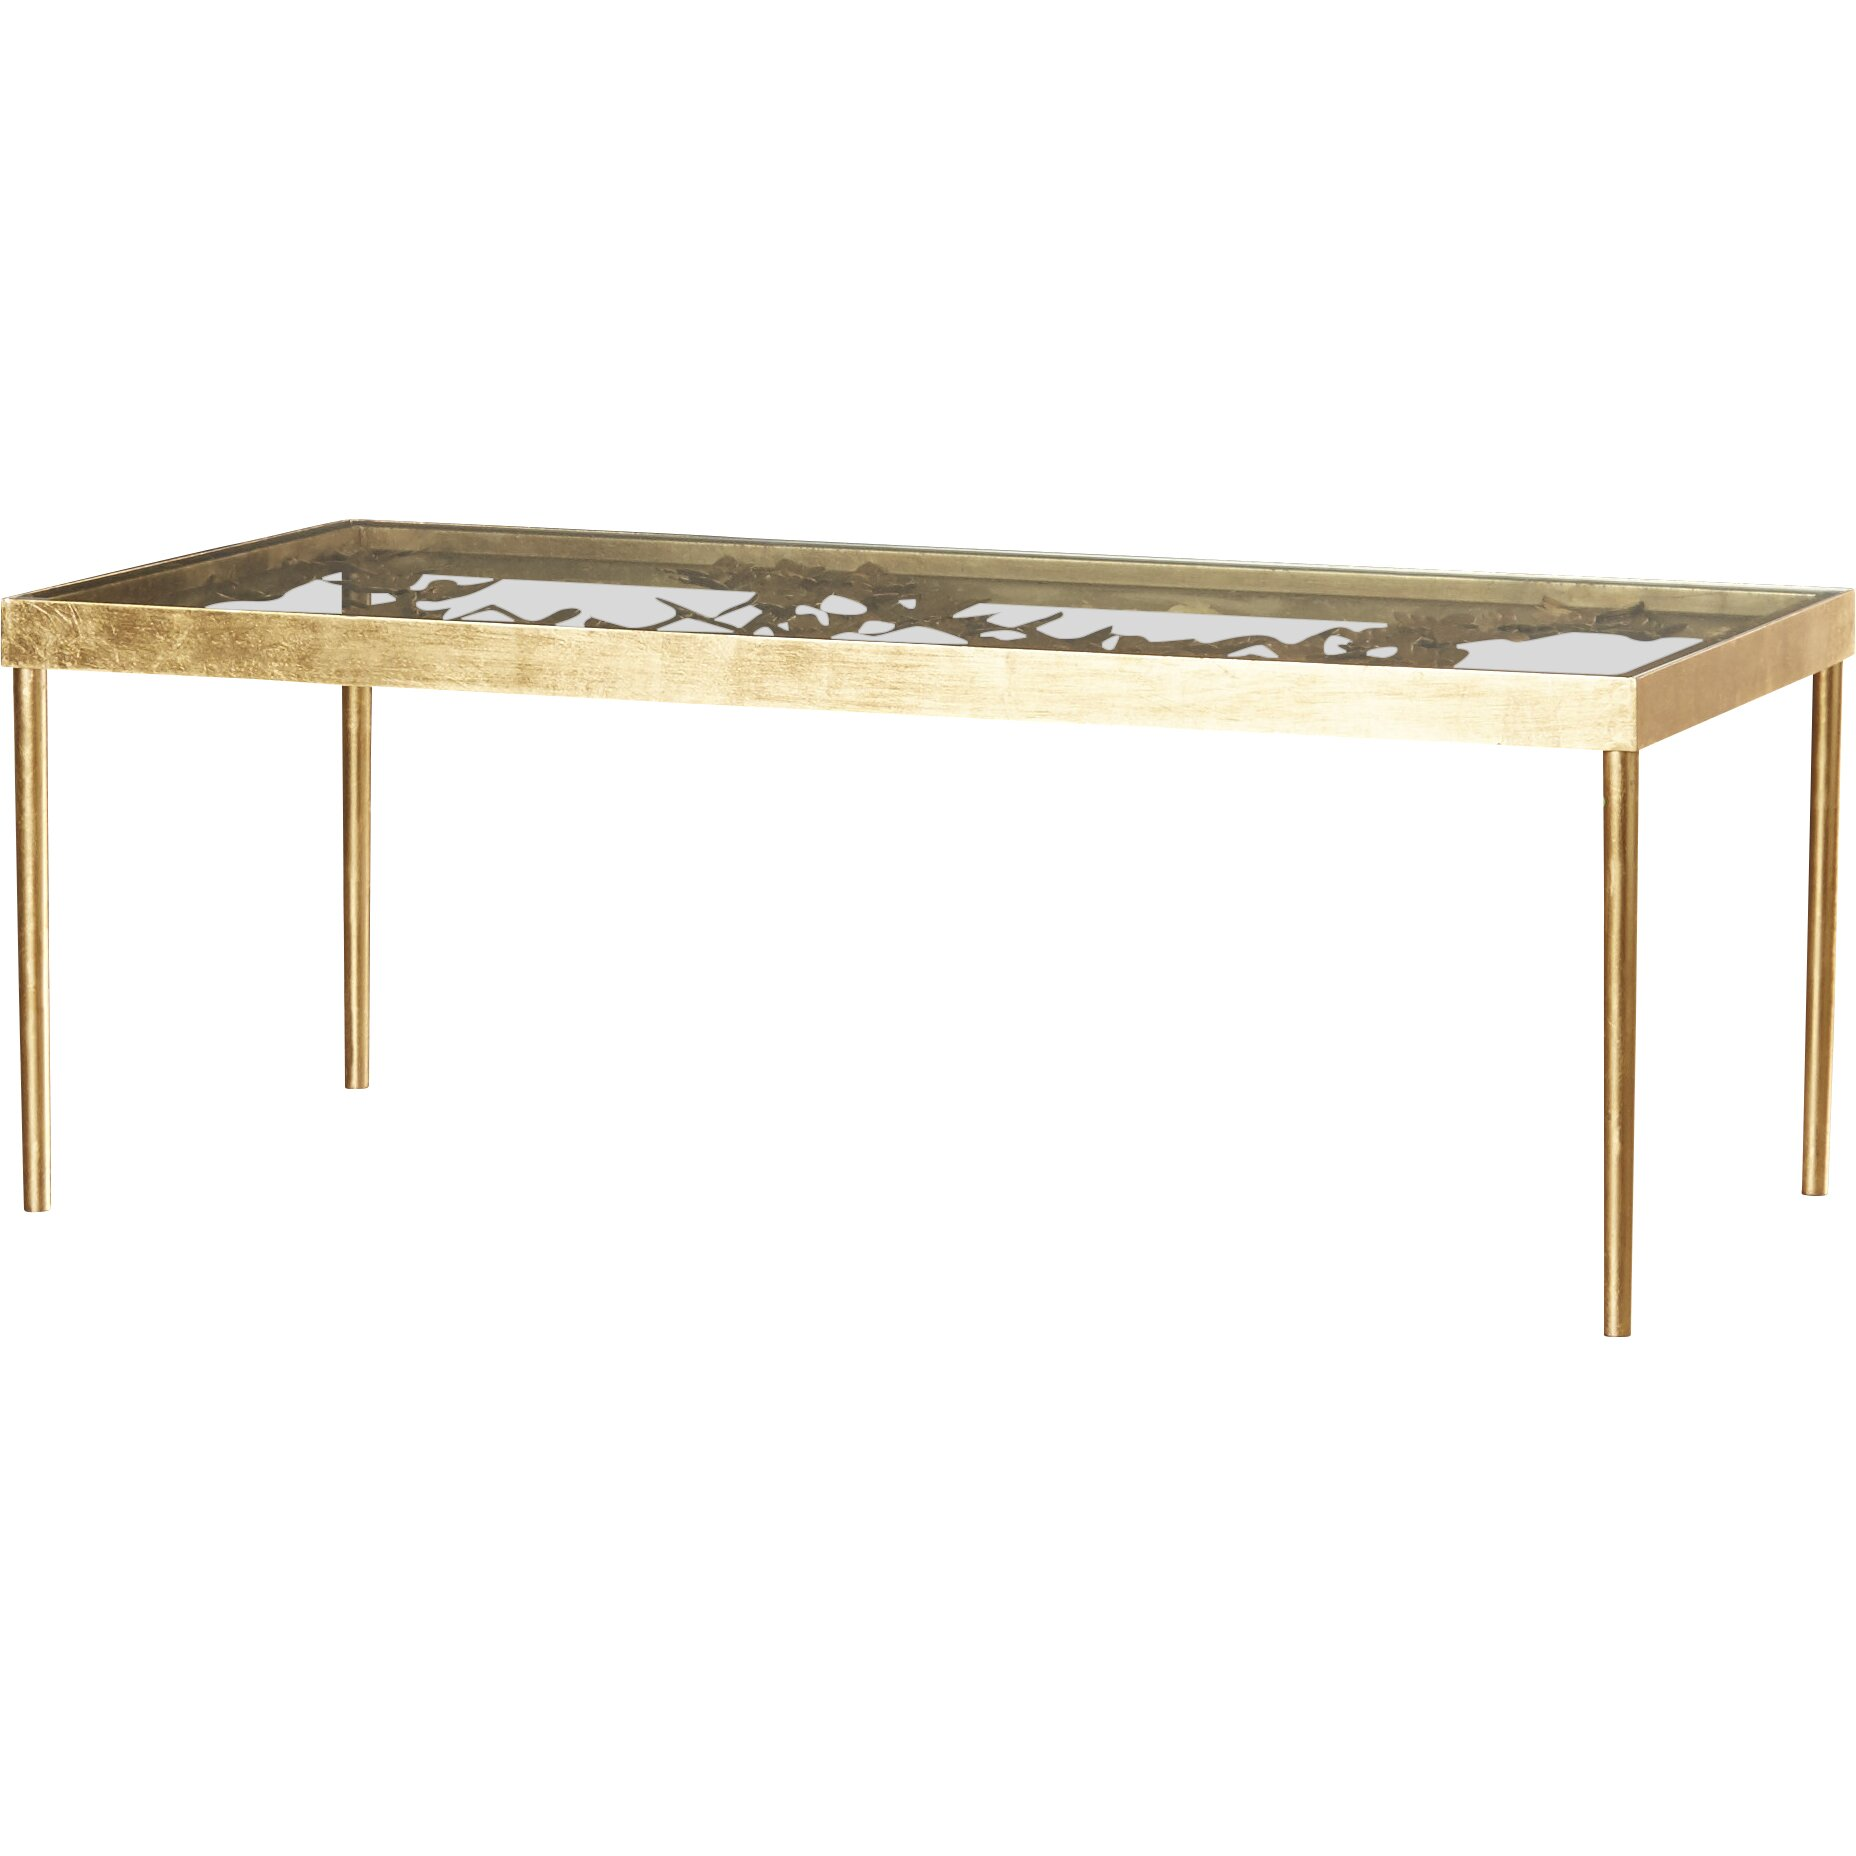 Coffee Table With Tray Top: Mercer41 Acton Coffee Table With Tray Top & Reviews